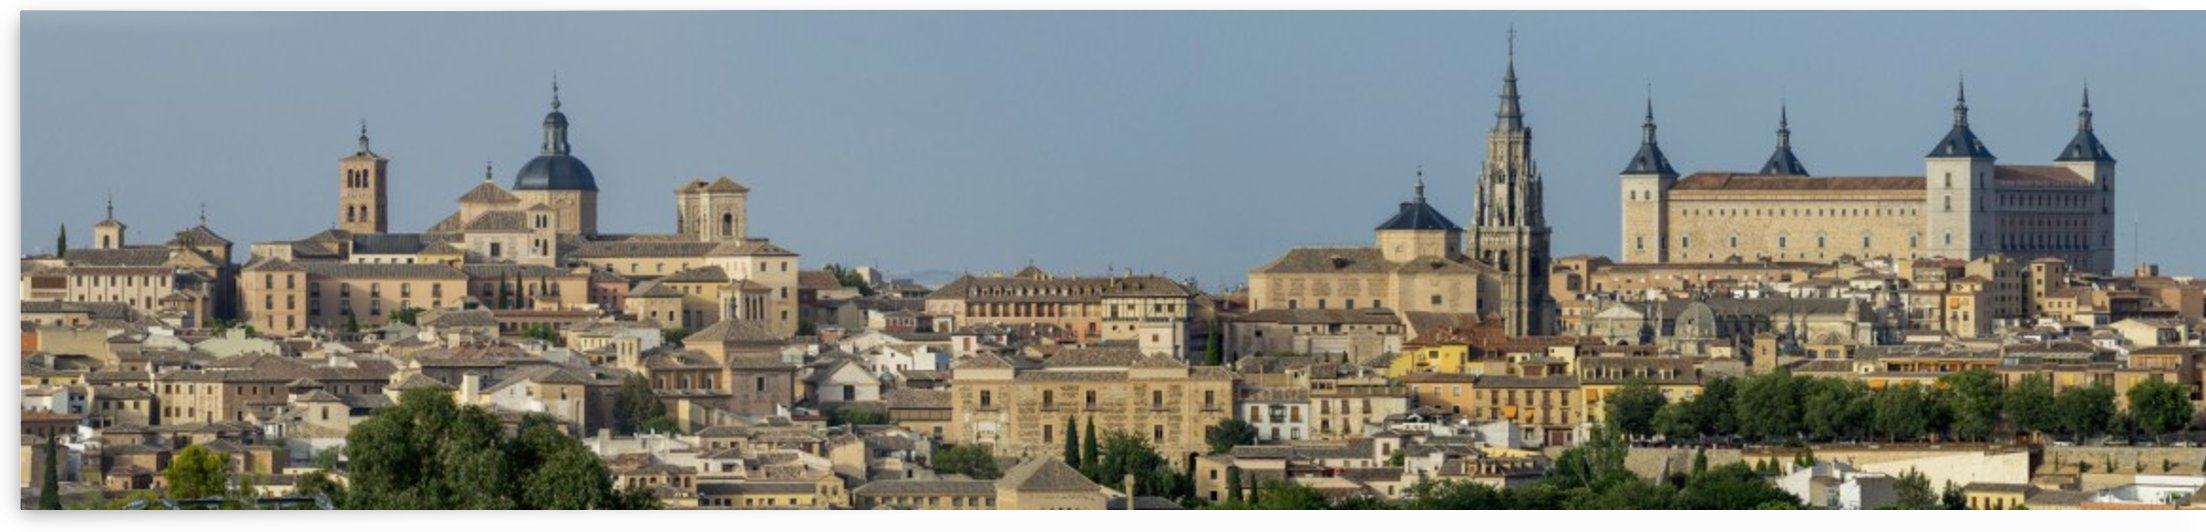 Panorama of the town of Toledo; Toledo, Castile-La Mancha, Spain by PacificStock